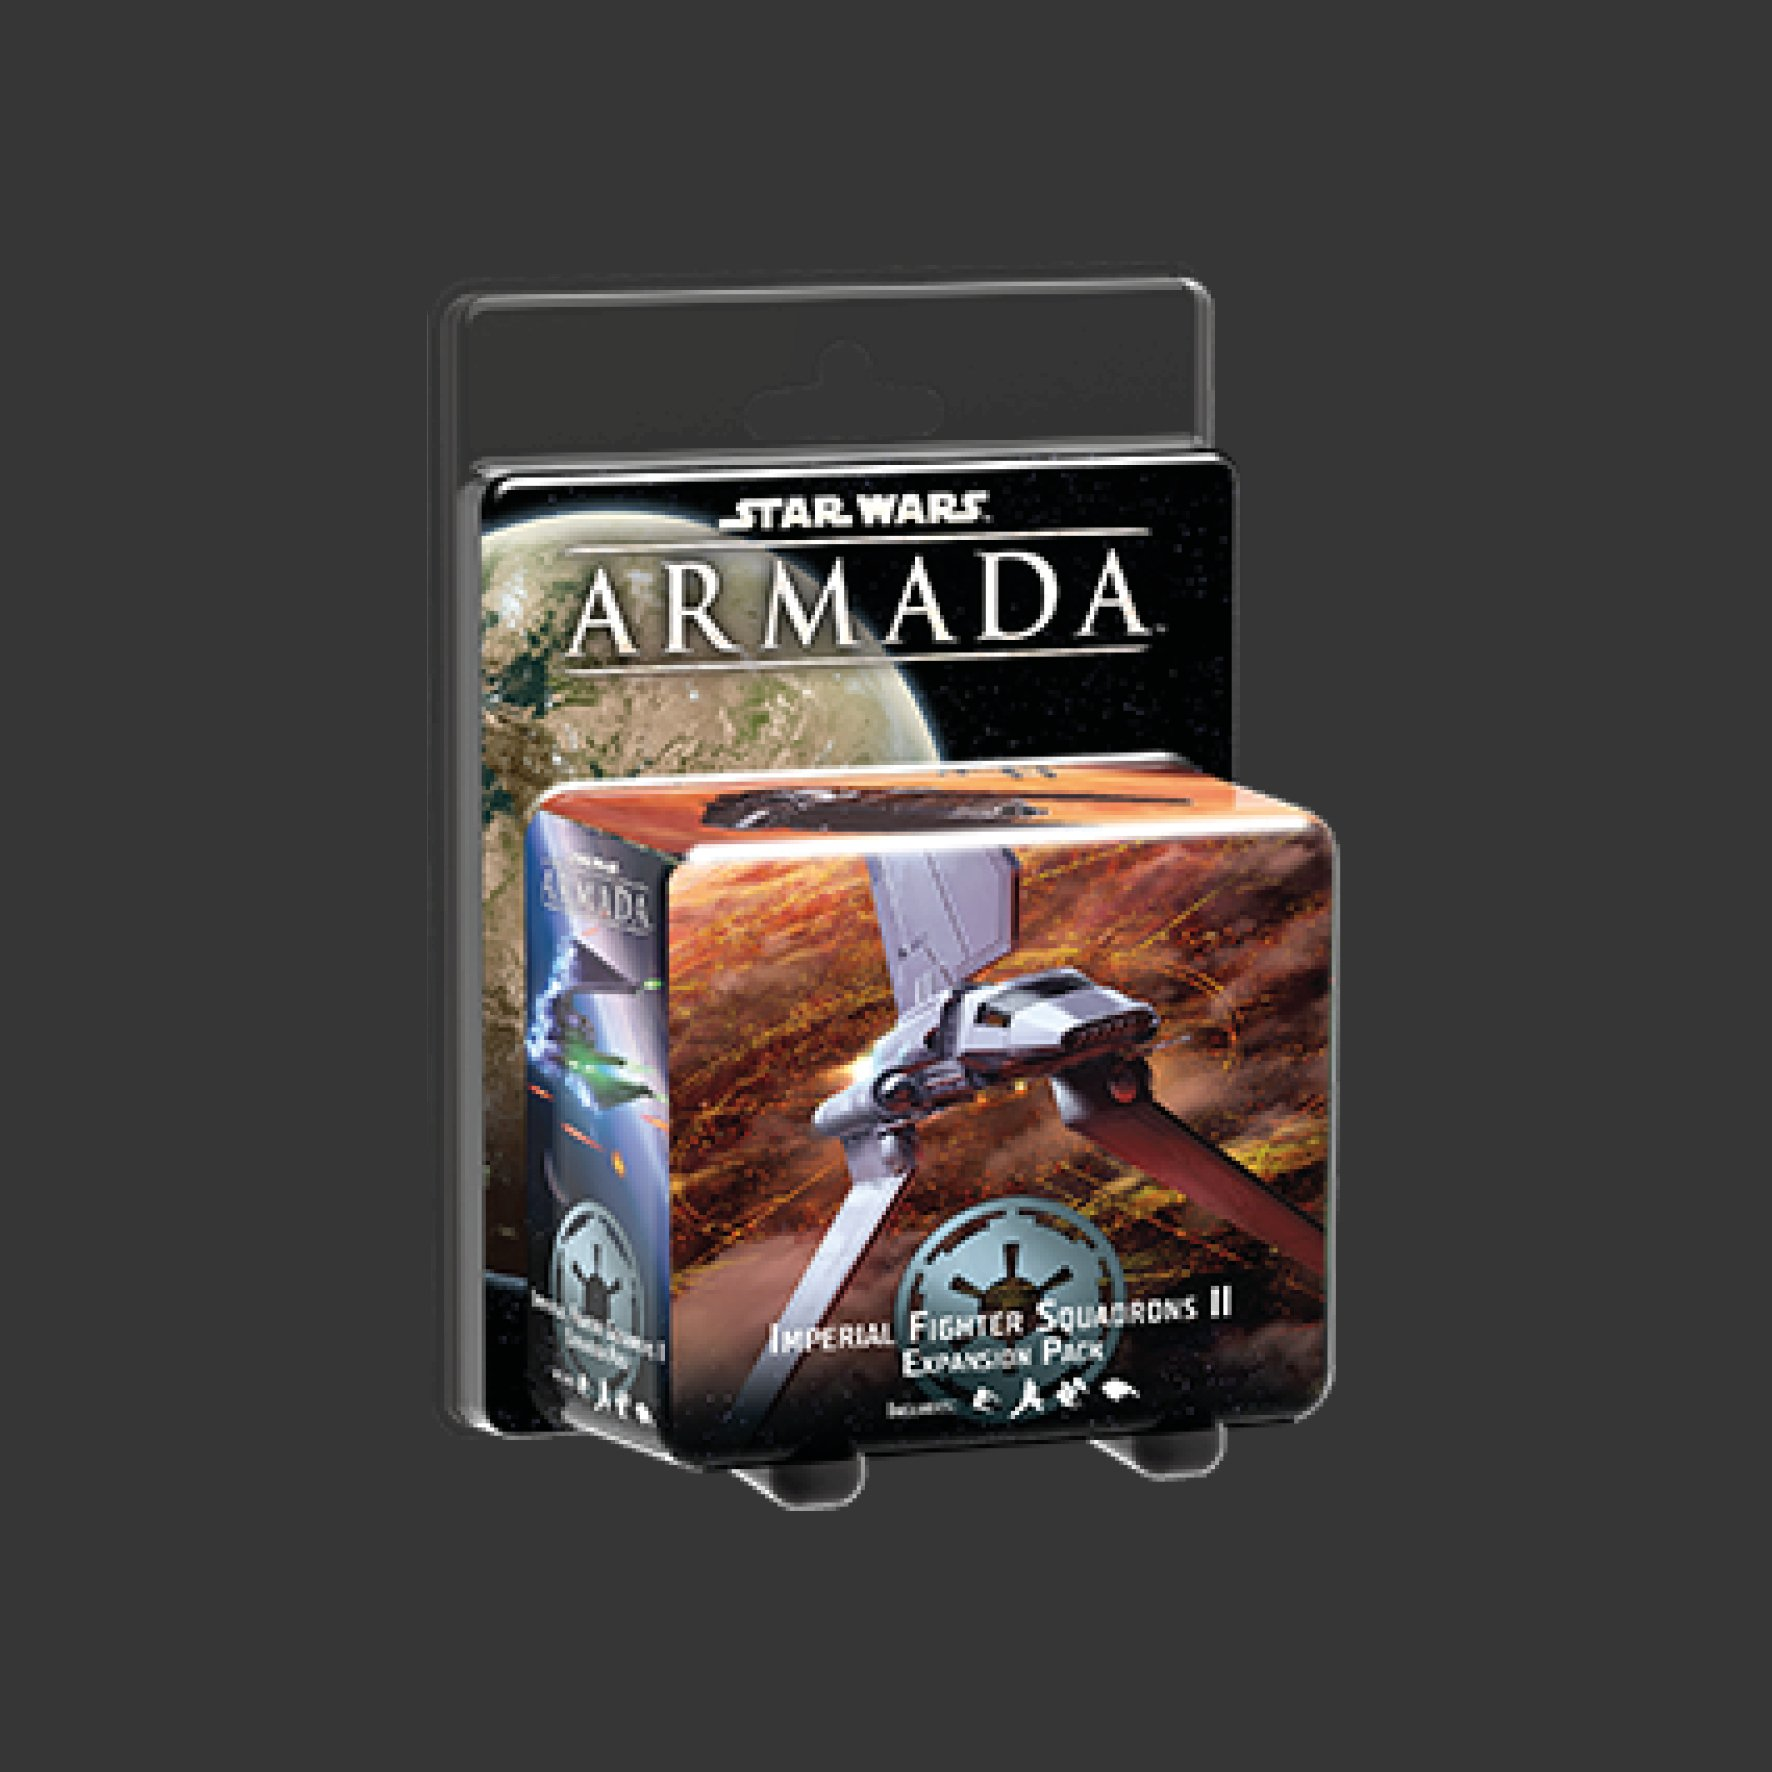 Armada: Imperial Fighter Squadrons II Expansion Pa